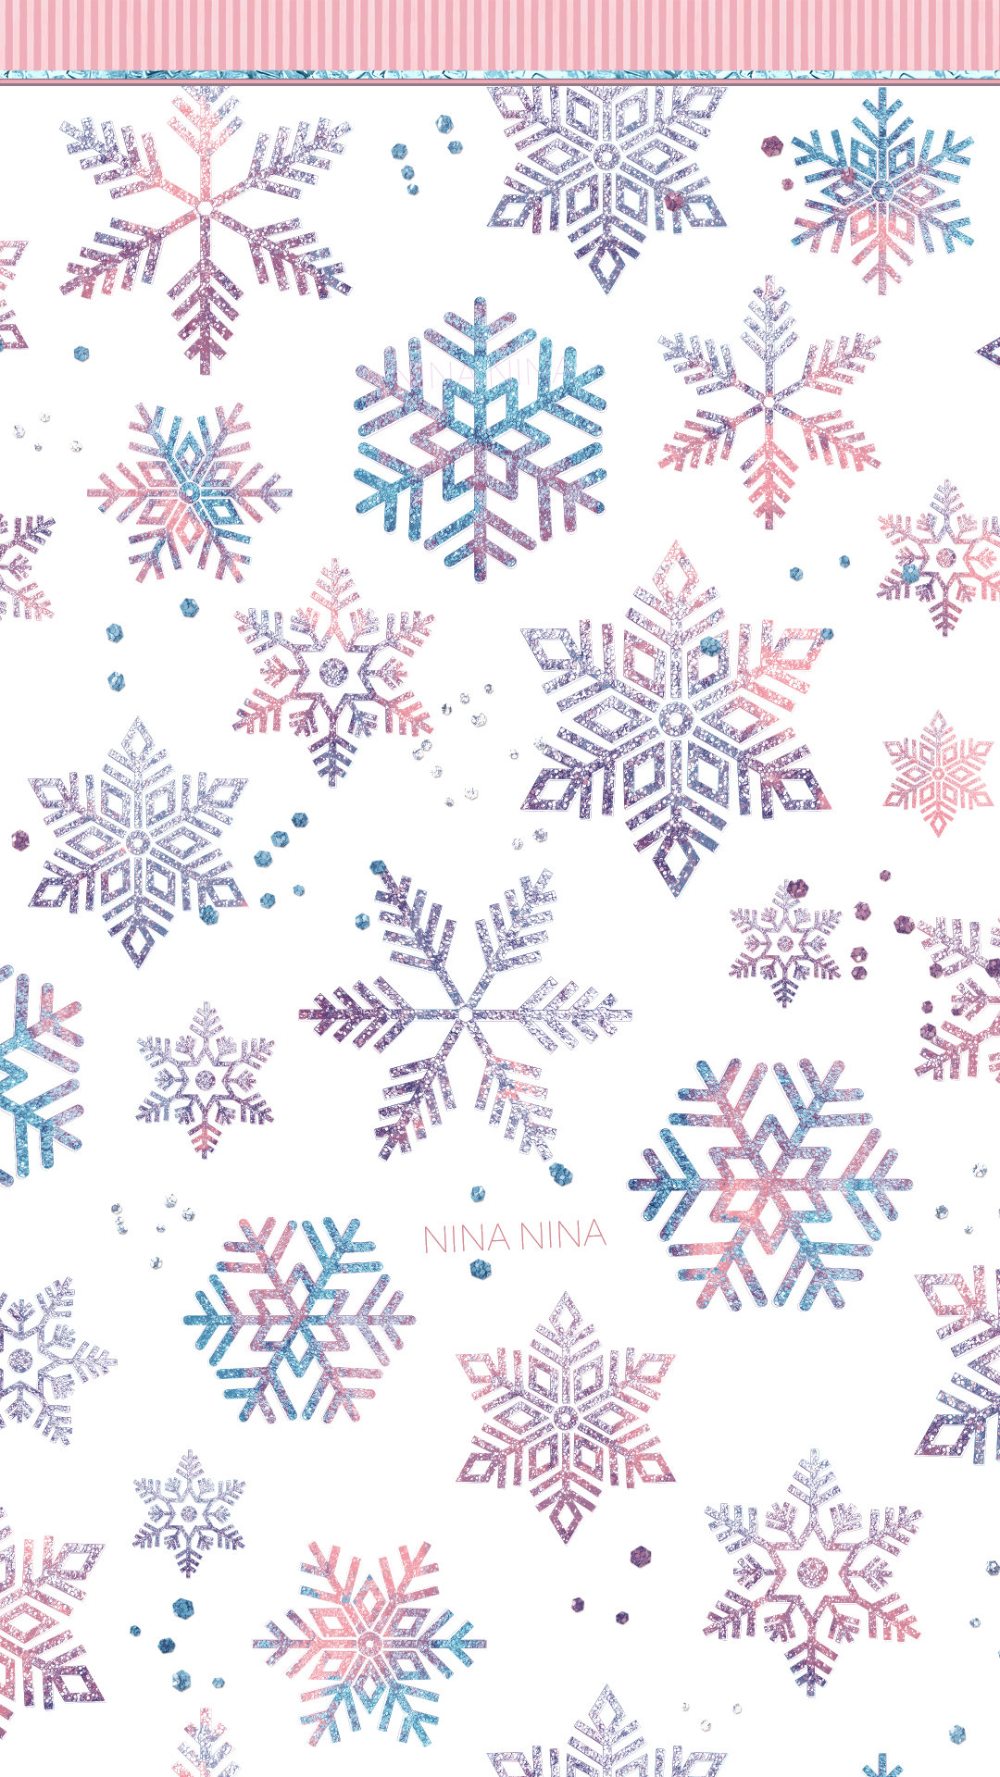 Watercolor Snowflakes Digital Papers Blush And Blue Seamless Patterns Glitter Snow Winter Ice Crystals Fabric Scrapbook Planner Sparkle In 2021 Christmas Phone Wallpaper Snowflake Wallpaper Cute Christmas Wallpaper